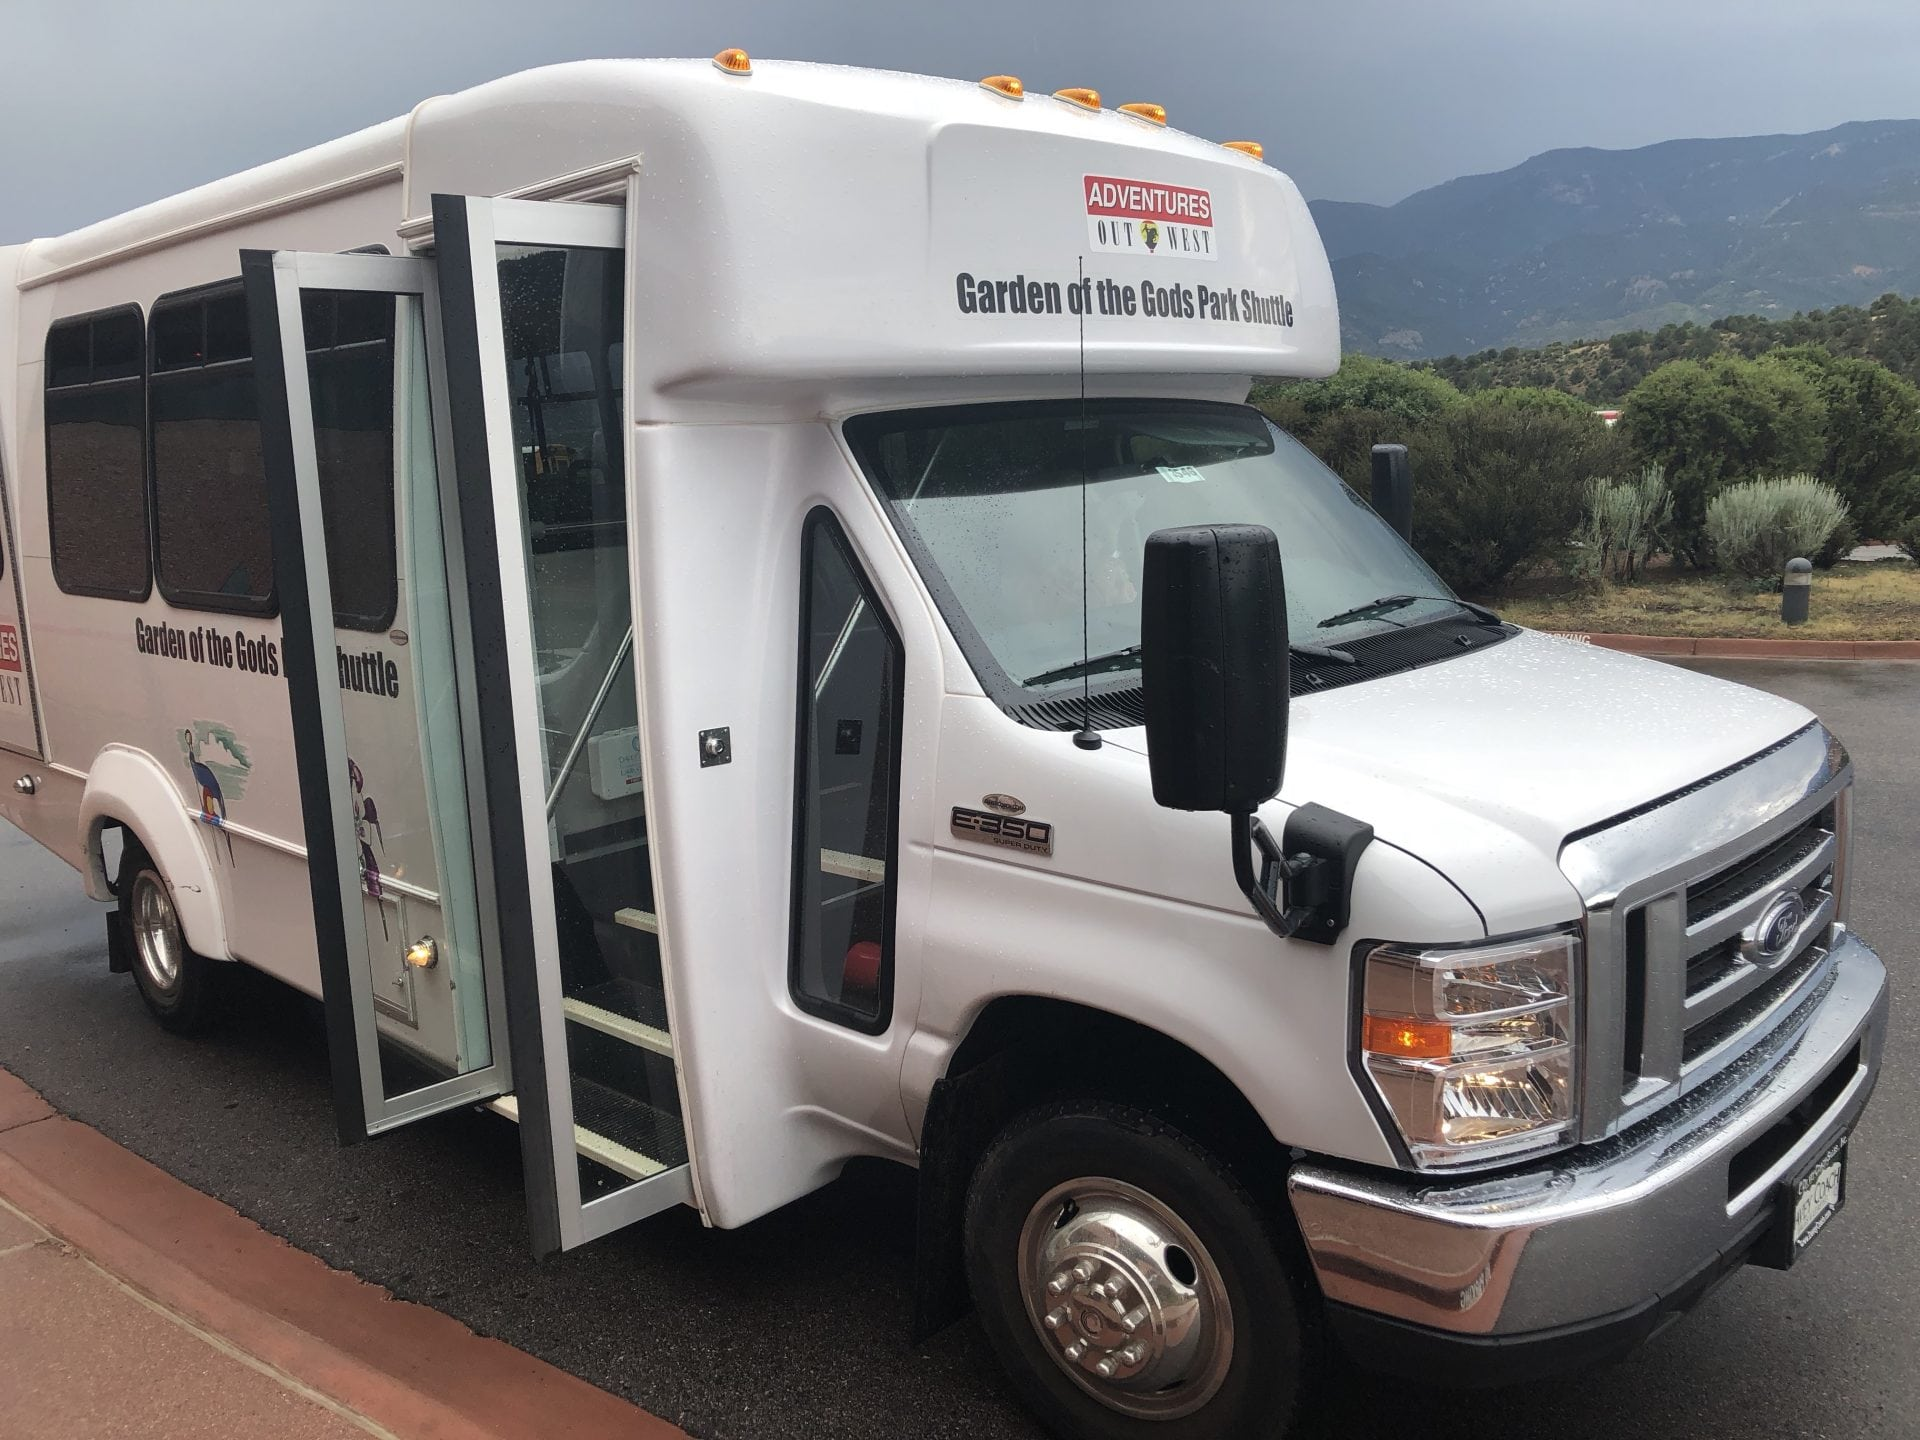 New Garden of the Gods shuttle makes visiting the park easier